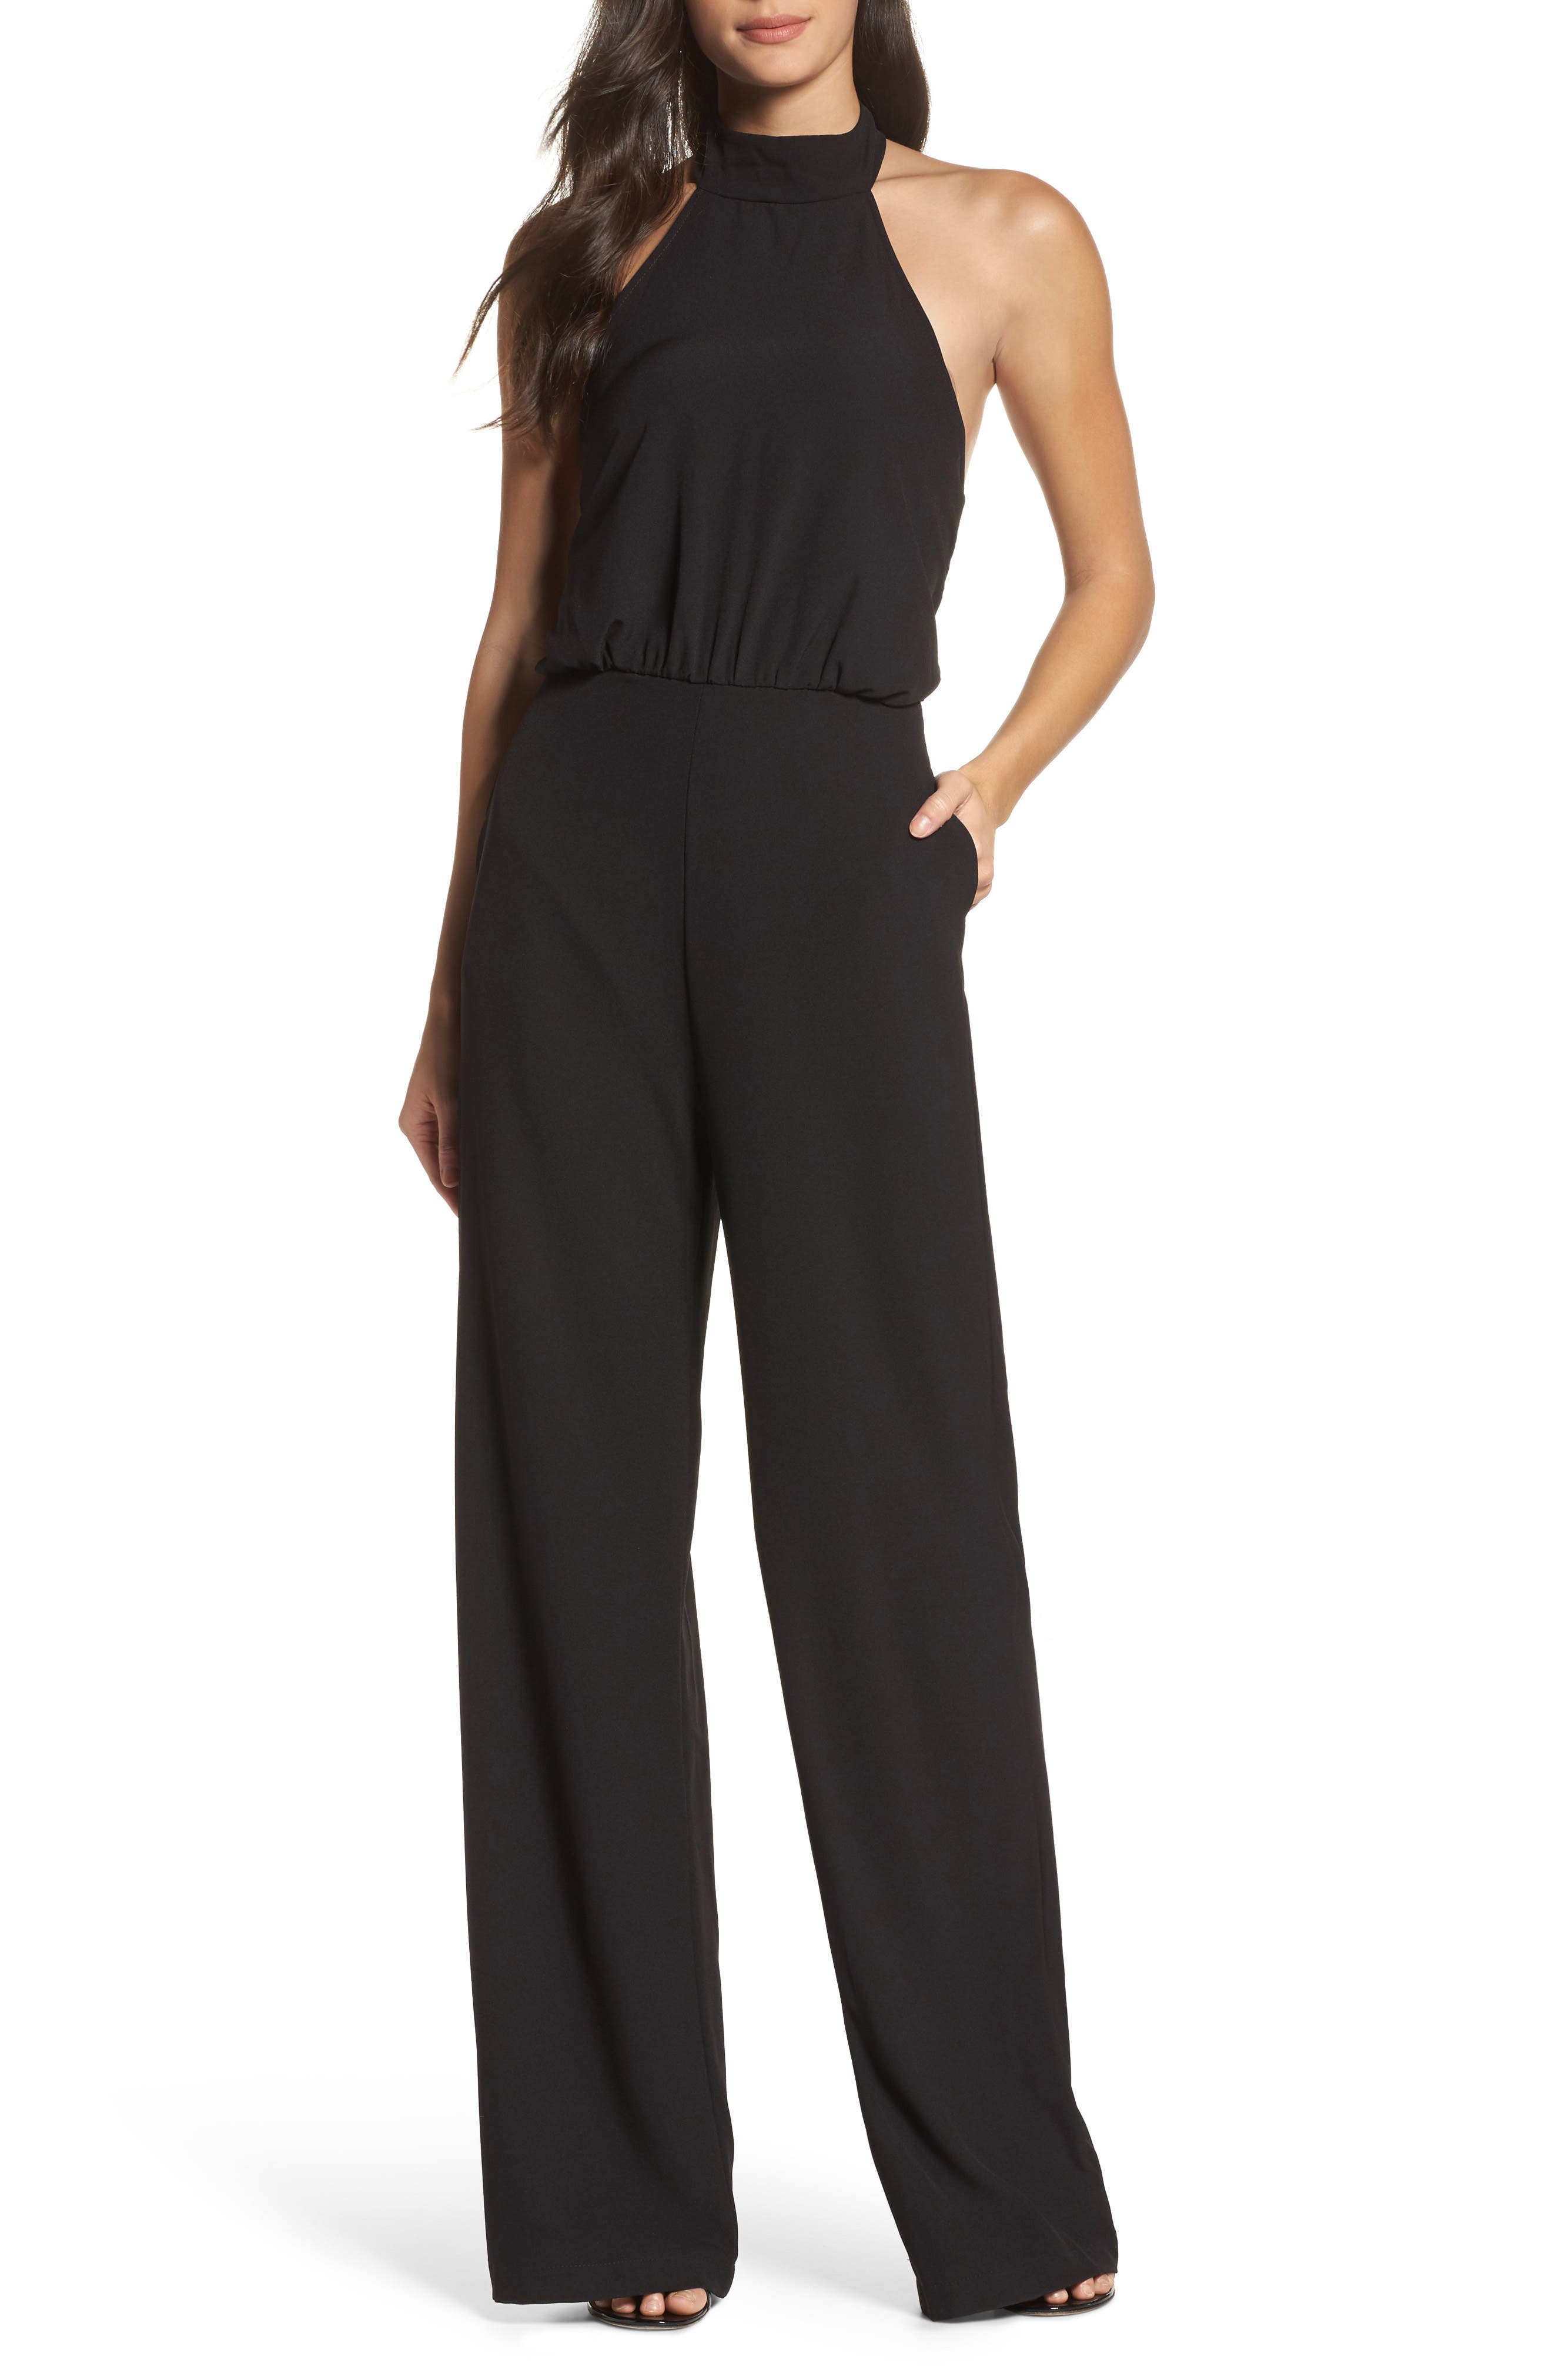 Moment for Life Halter Jumpsuit,                             Main thumbnail 1, color,                             BLACK